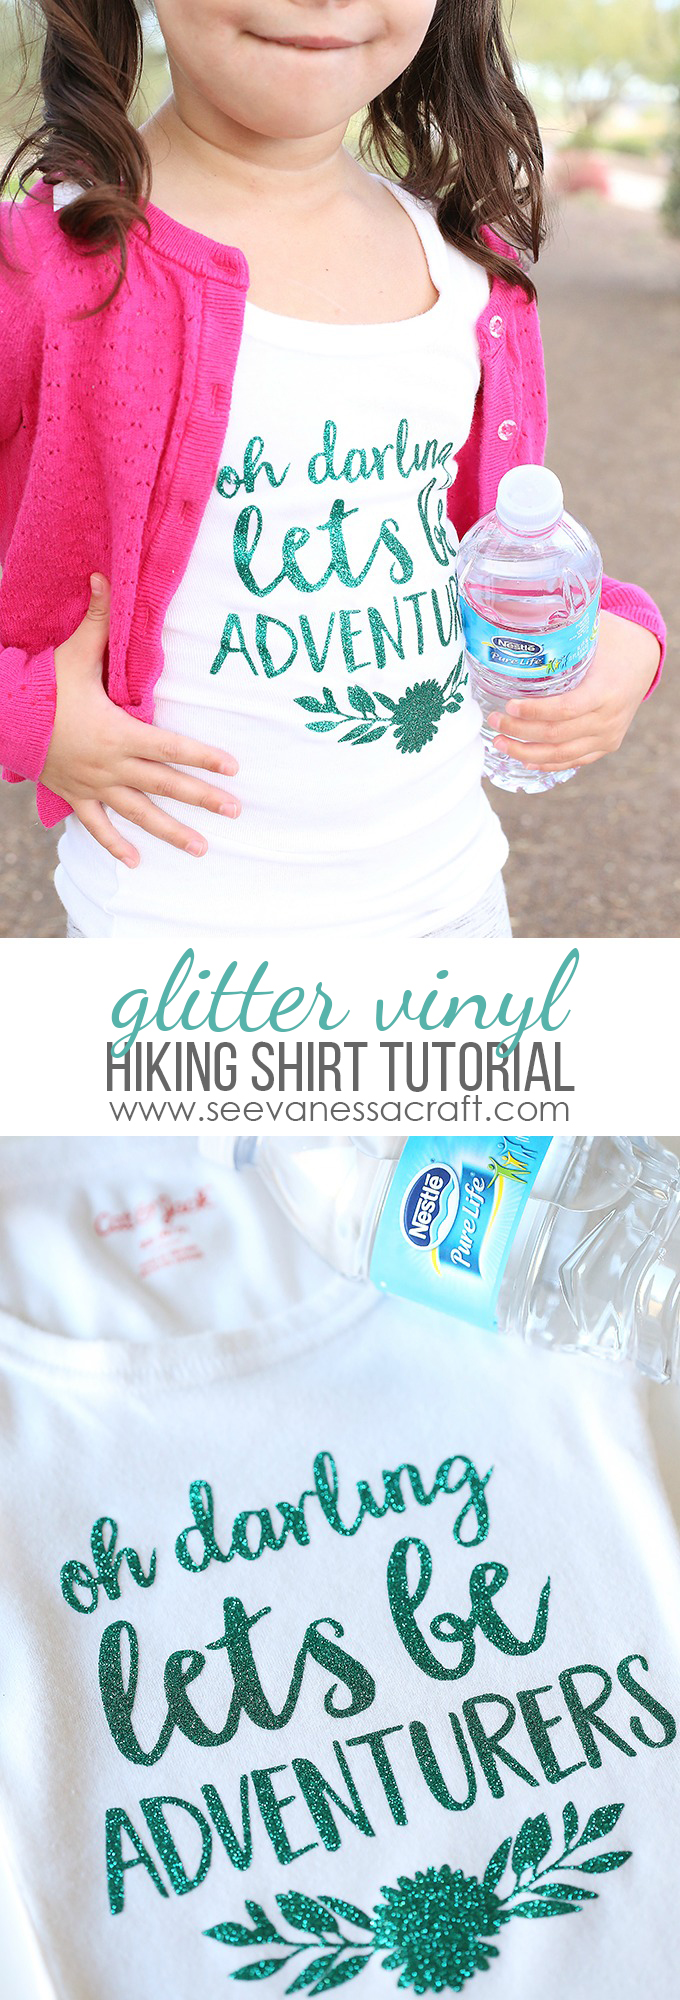 Glitter Vinyl Hiking Adventure Shirt Tutorial